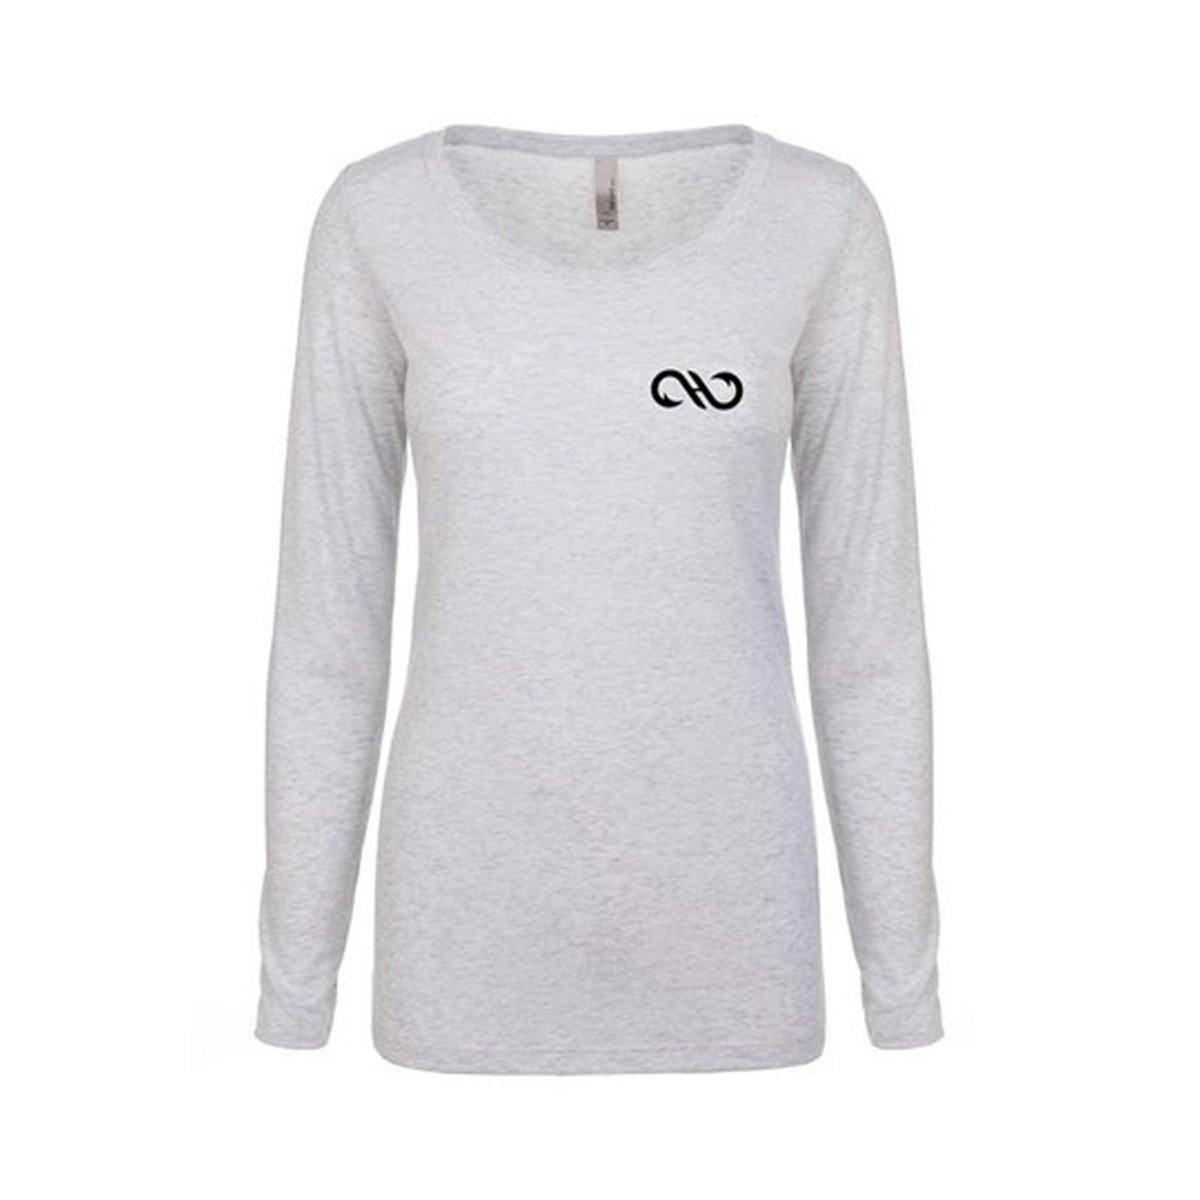 Long Sleeve Women's Shirt